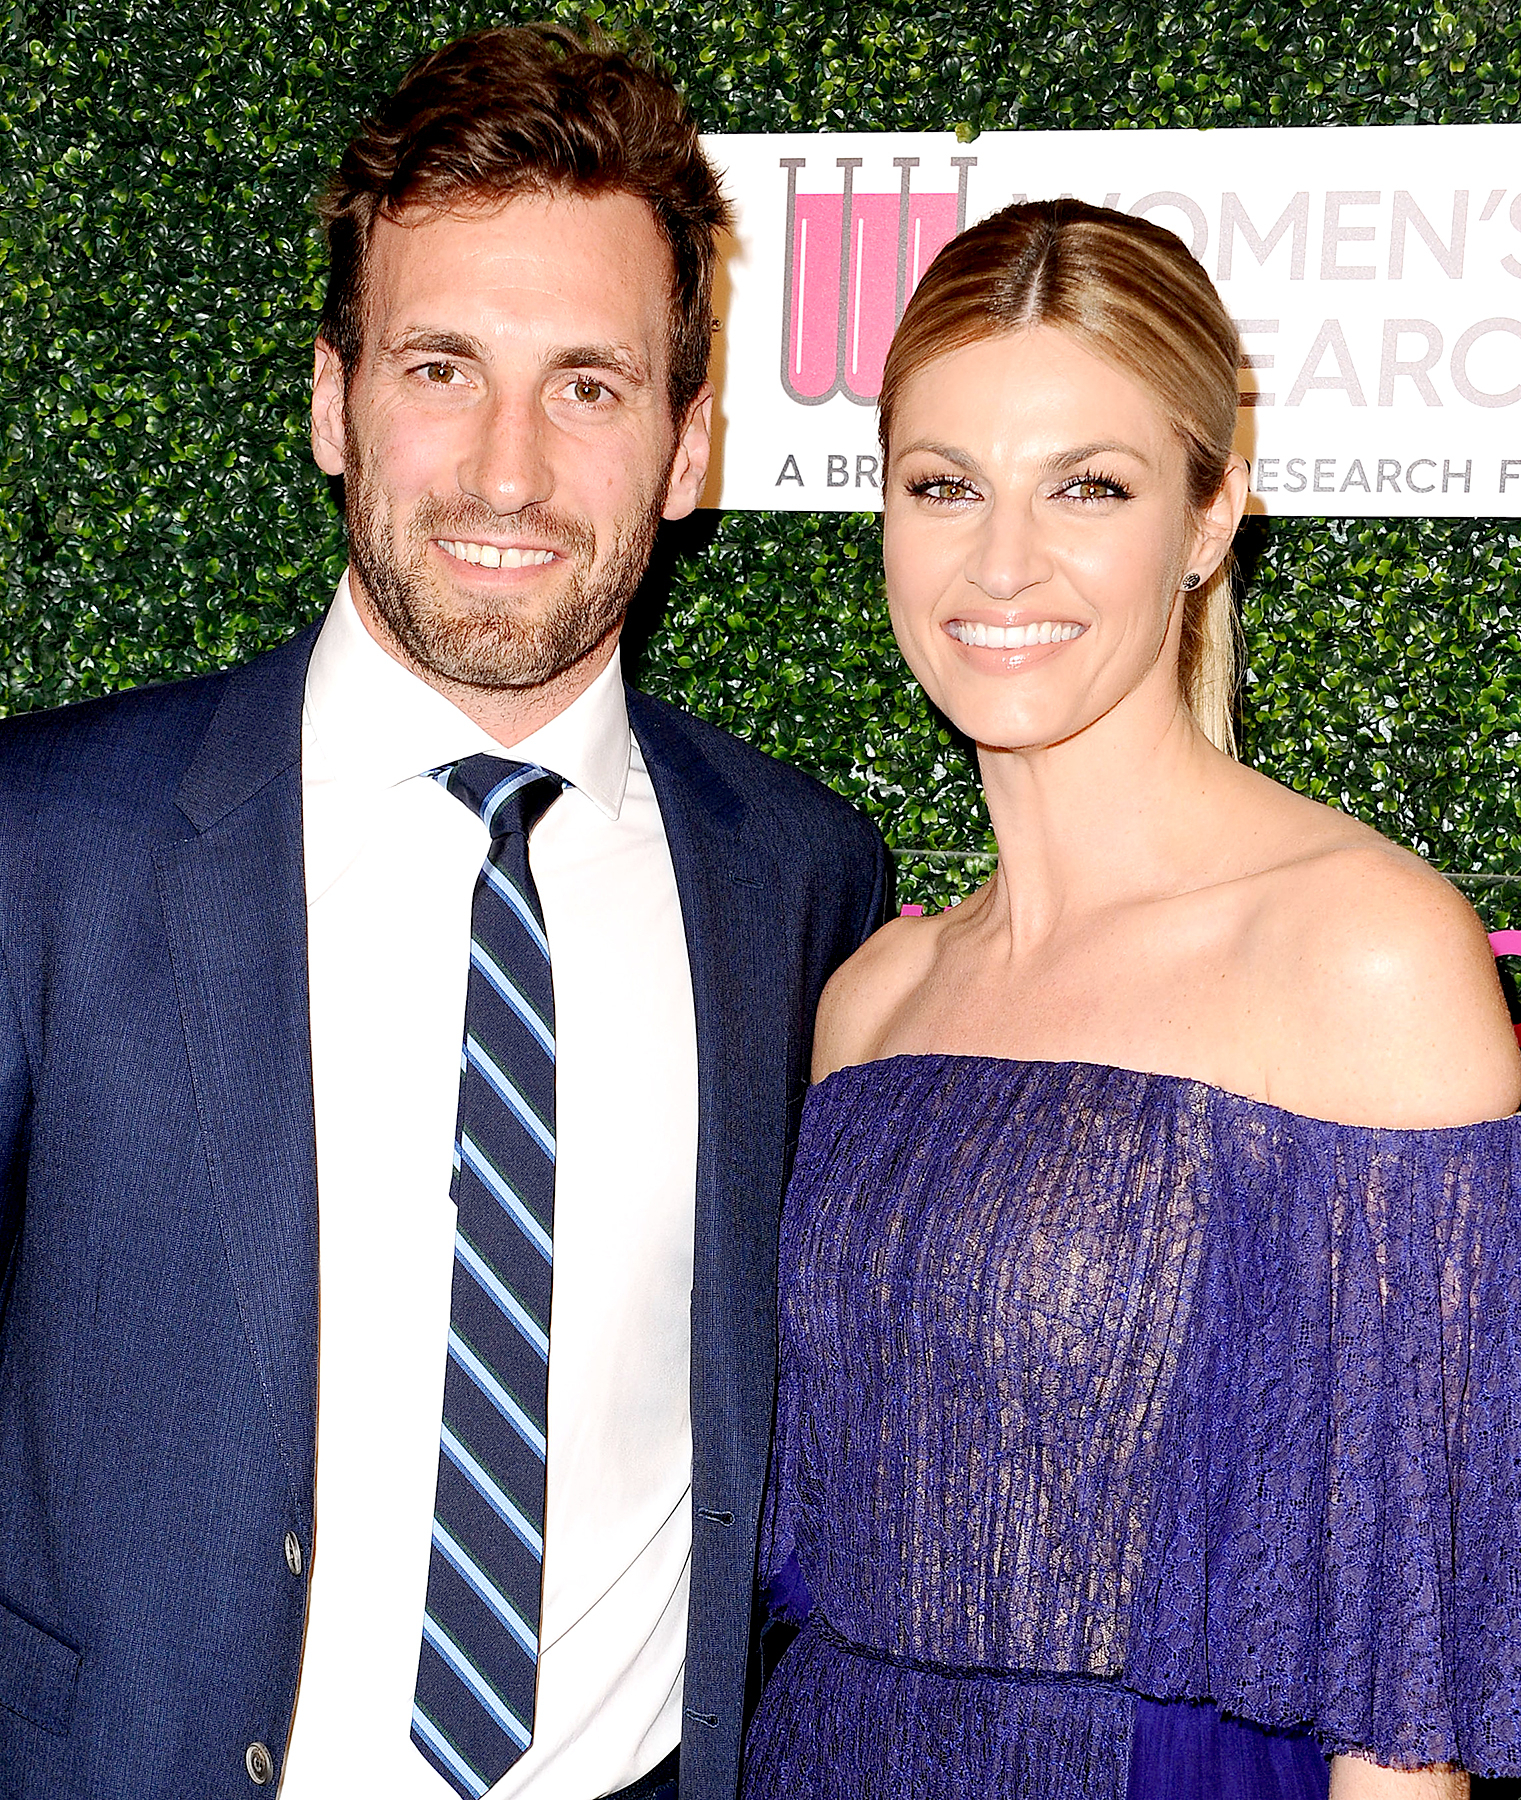 Jarret Stoll and Erin Andrews attend An Unforgettable Evening at the Beverly Wilshire Four Seasons Hotel on February 16, 2017 in Beverly Hills, California